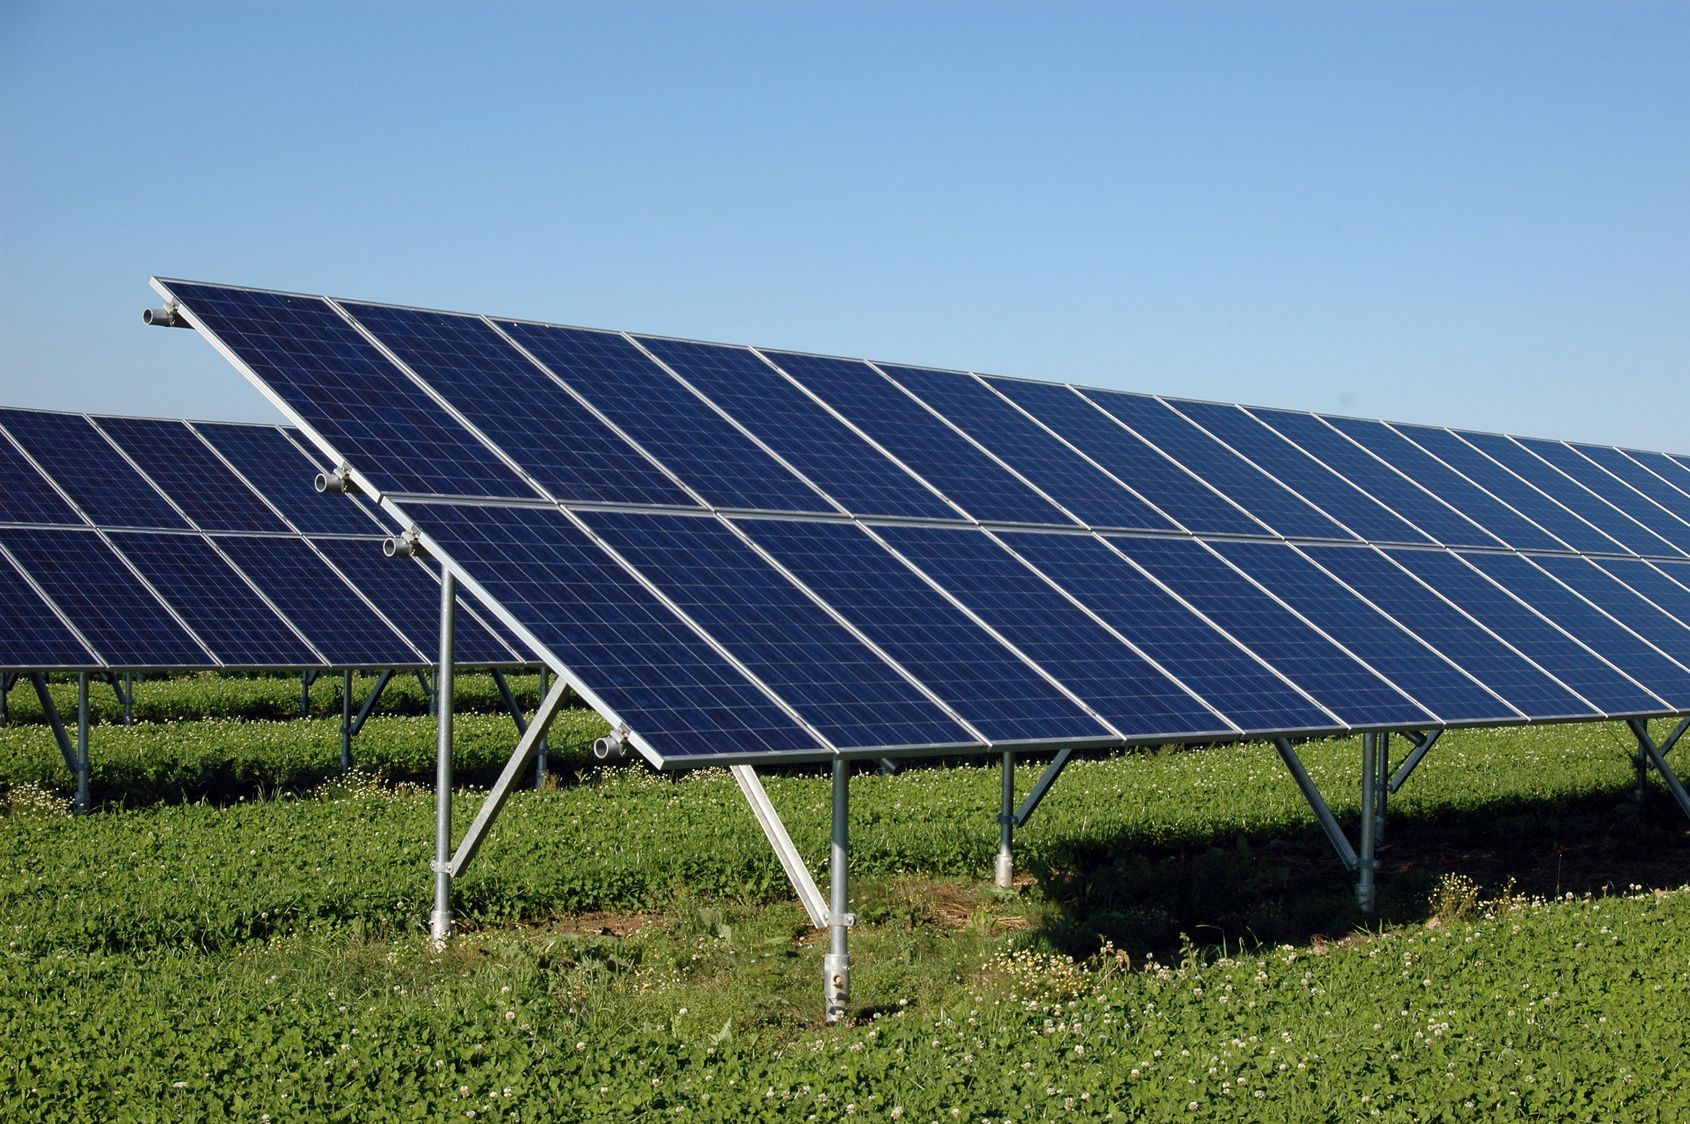 Solar Photovoltaic Pv In Netherlands Market Outlook To 2025 Update 2015 Capacity Generation Levelized Cost Of Energy Lco Solar Solar Pv Solar Projects